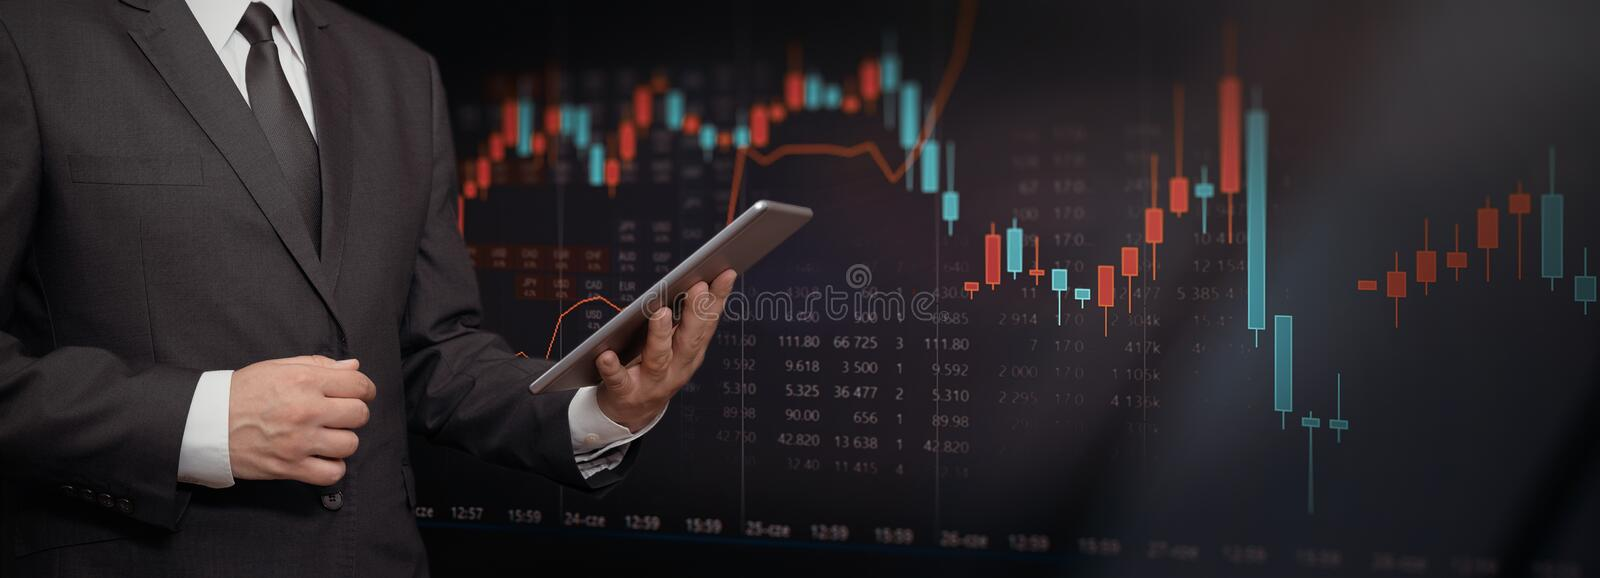 Investor with tablet, stock market background stock photos